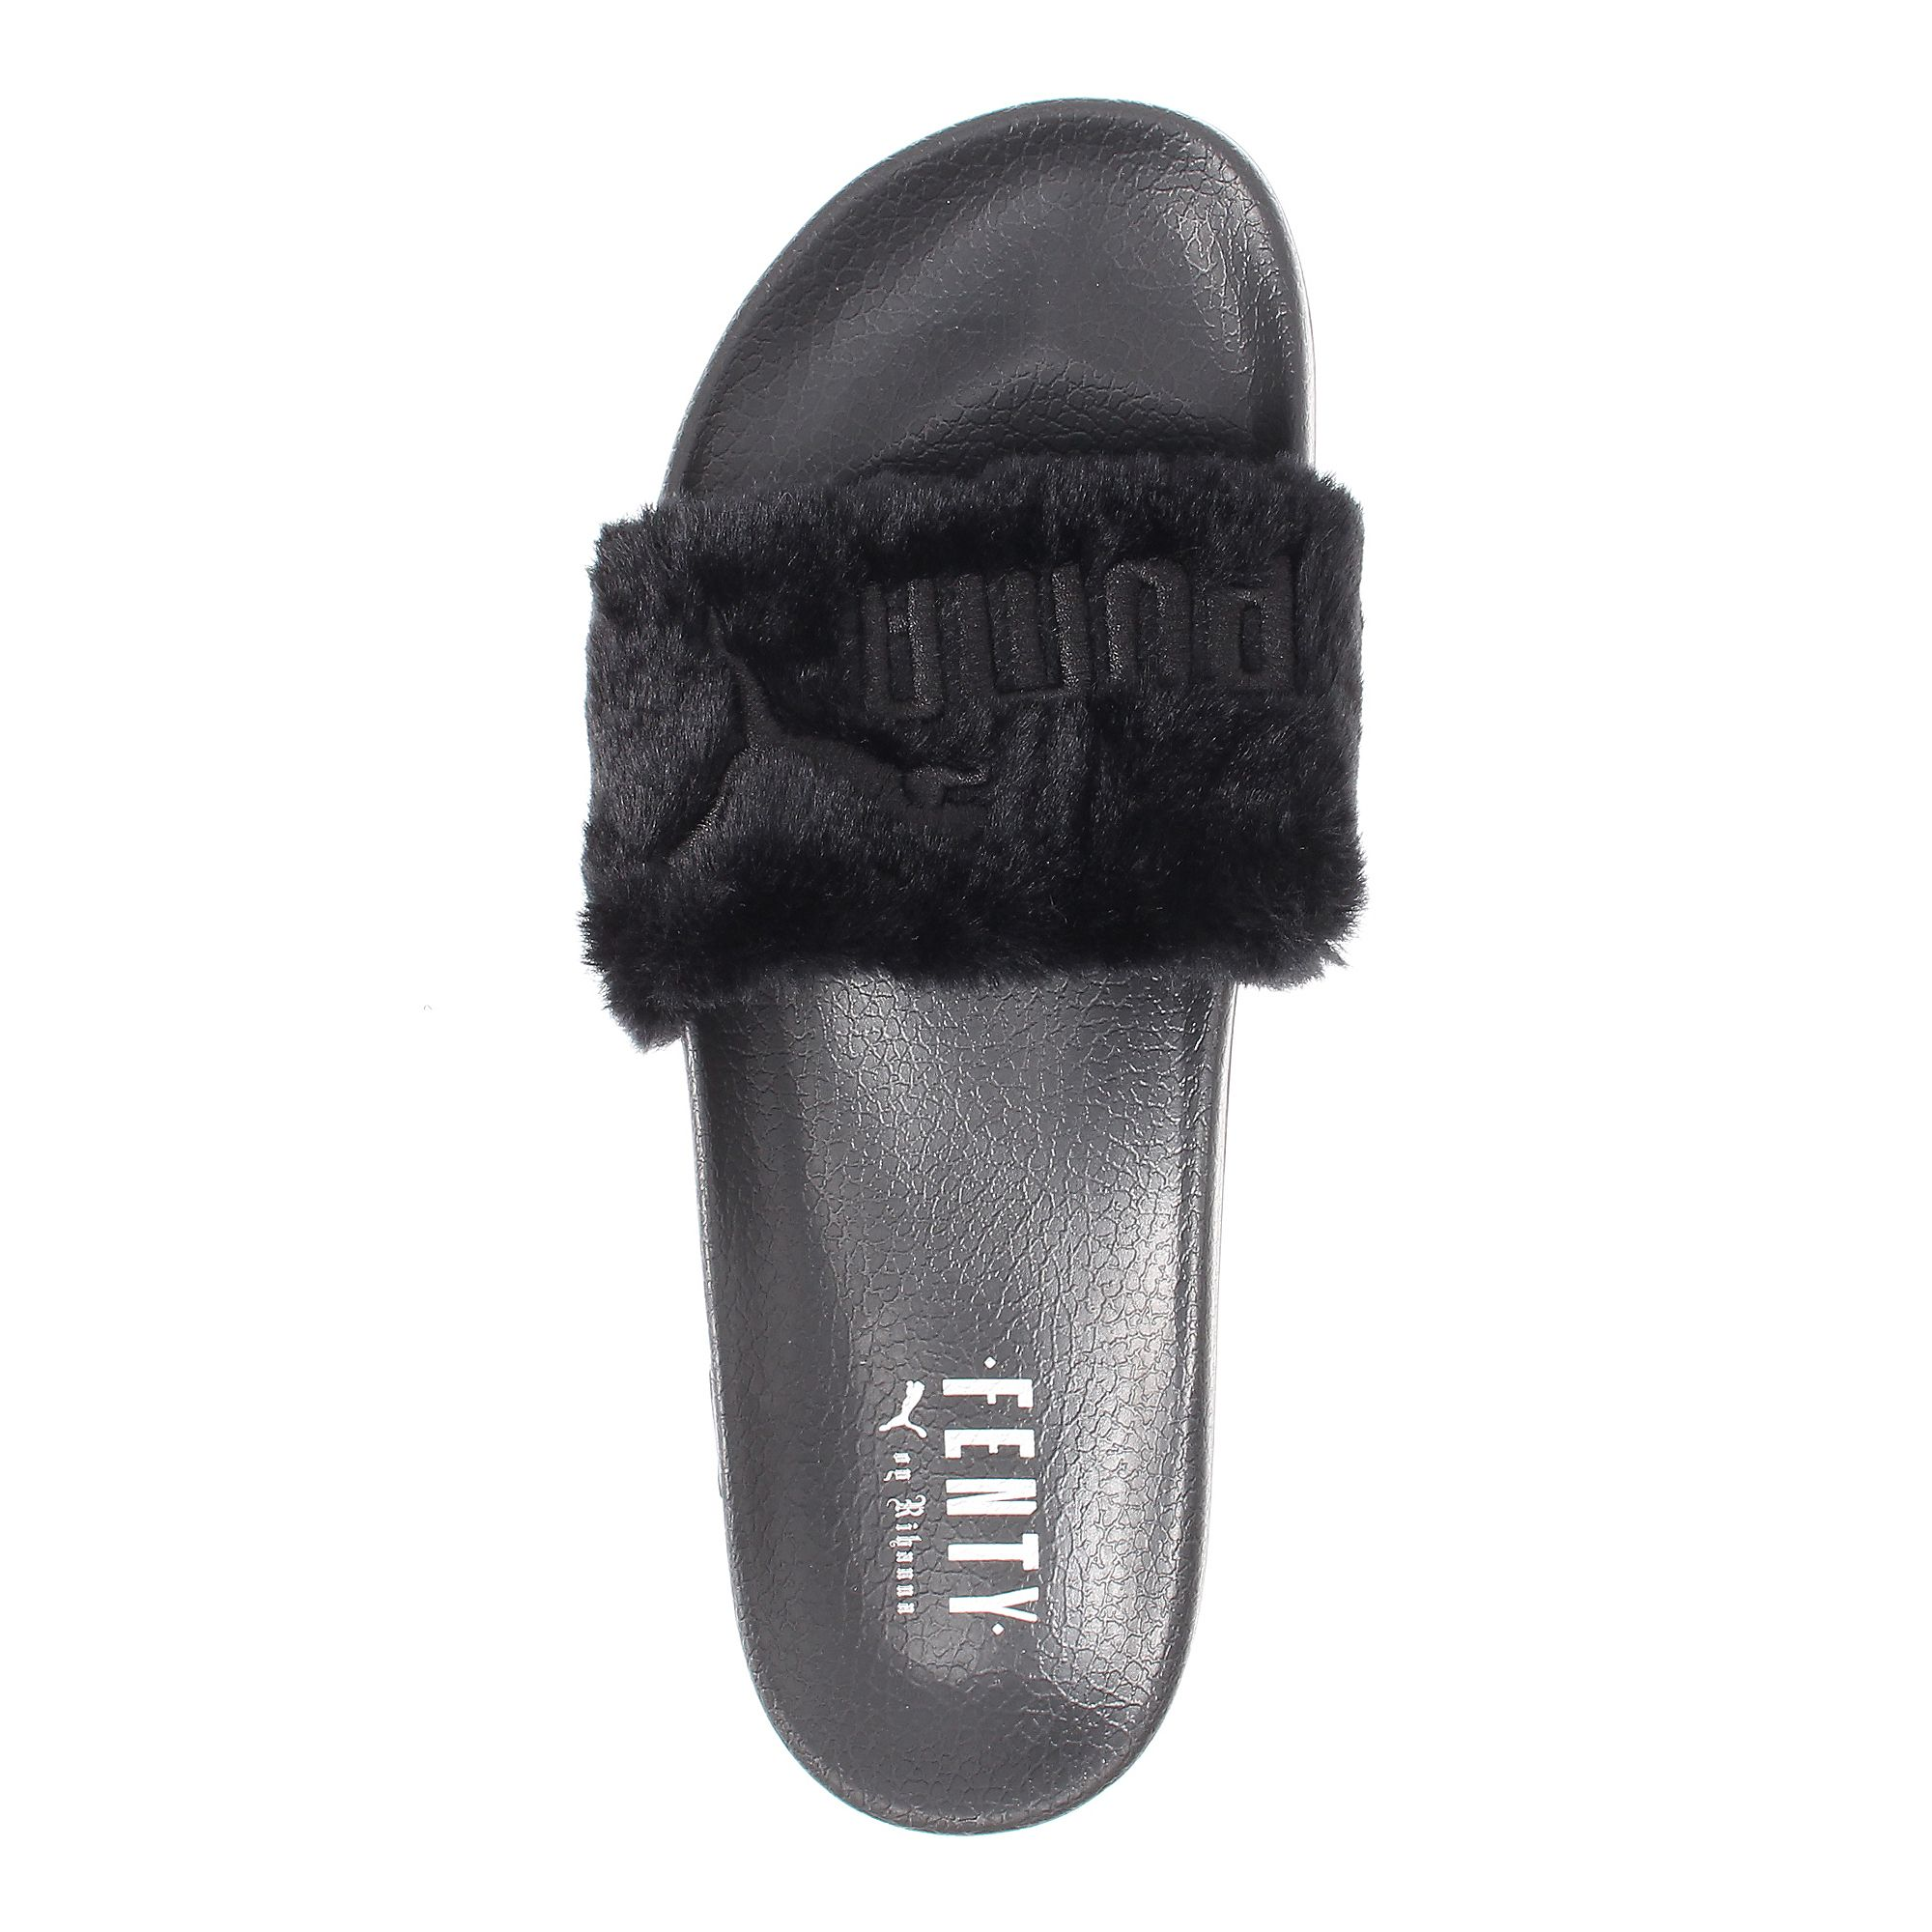 Where to Buy Rihanna's Puma Fur Slide - Racked